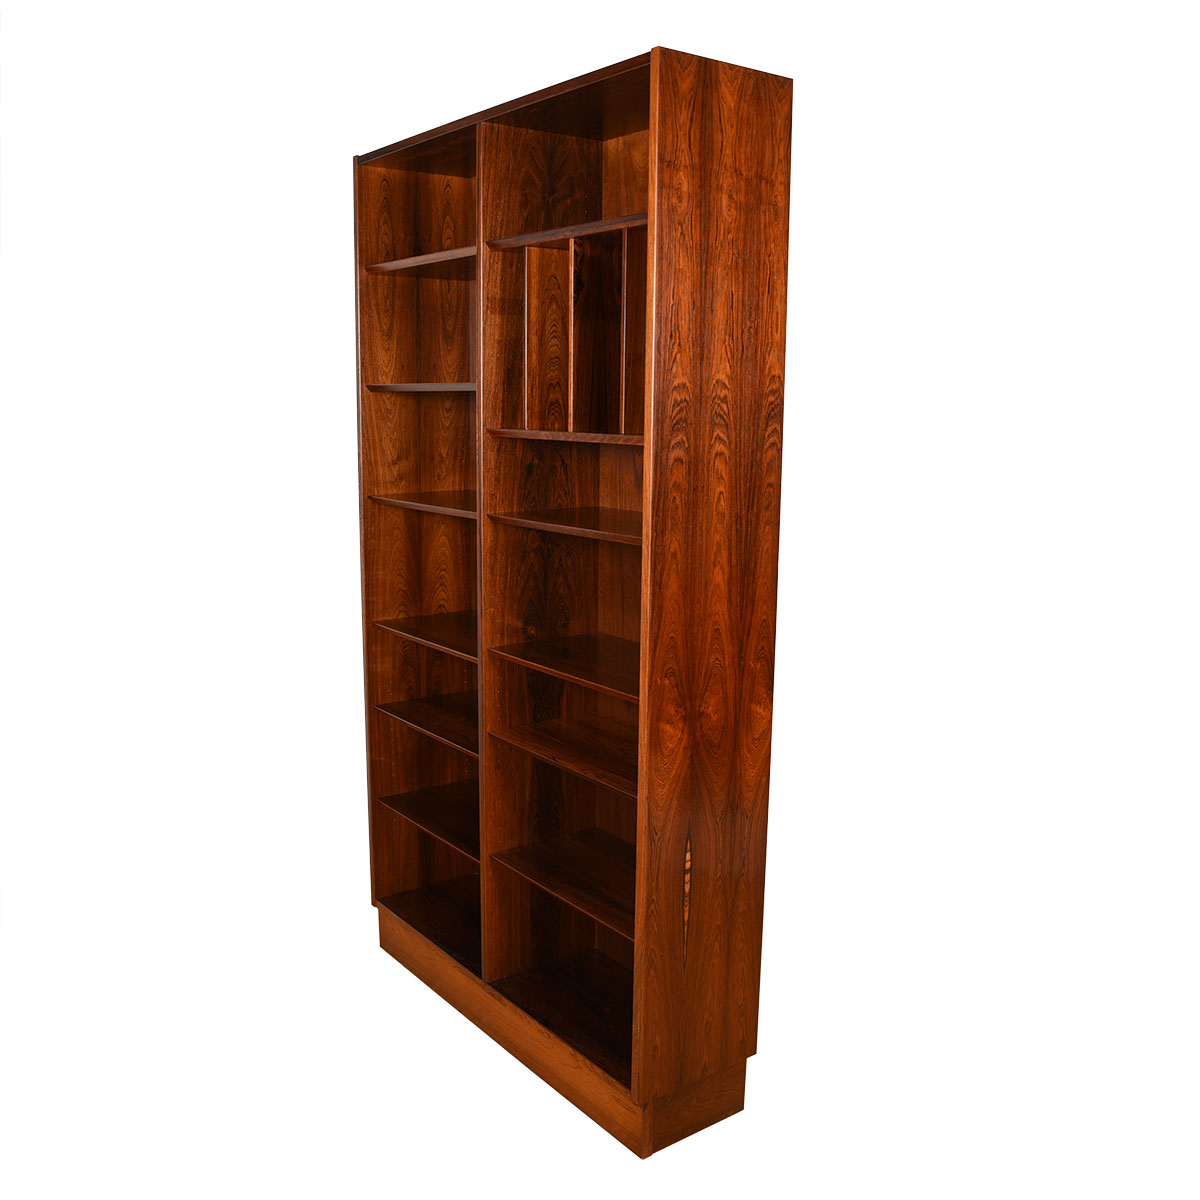 Danish Rosewood Stunning 42.5″ Bookcase w/ Adjustable Shelves